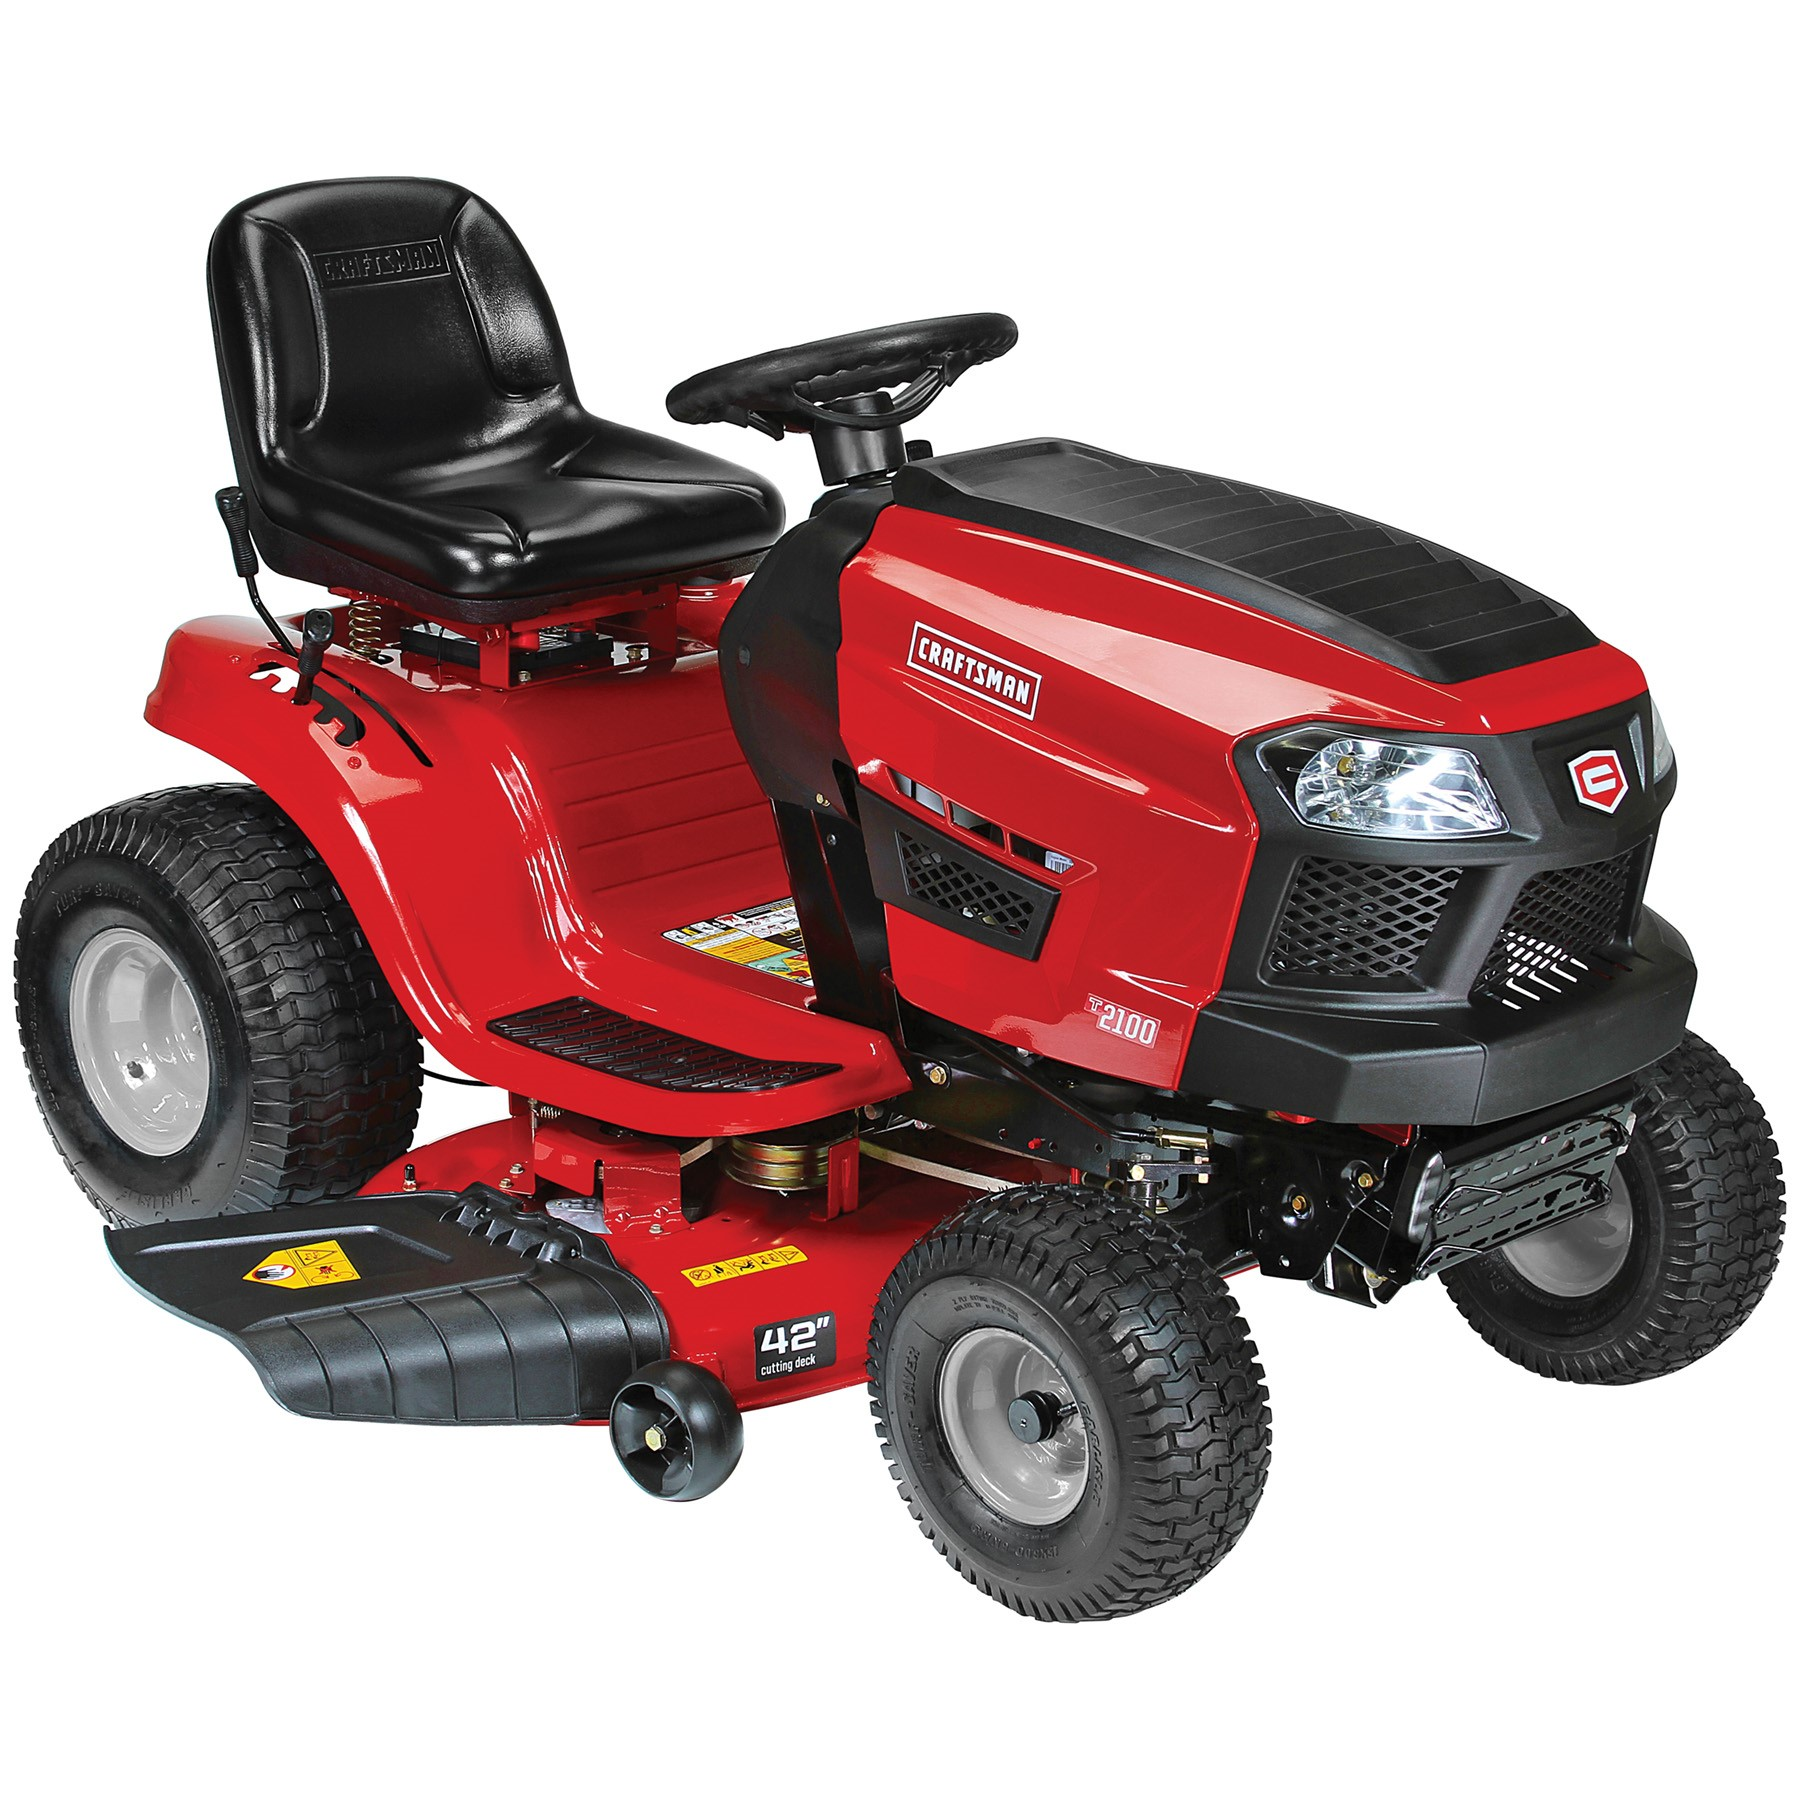 craftsman 25587 42 19 hp briggs stratton fender hydro automatic riding mower [ 1800 x 1800 Pixel ]